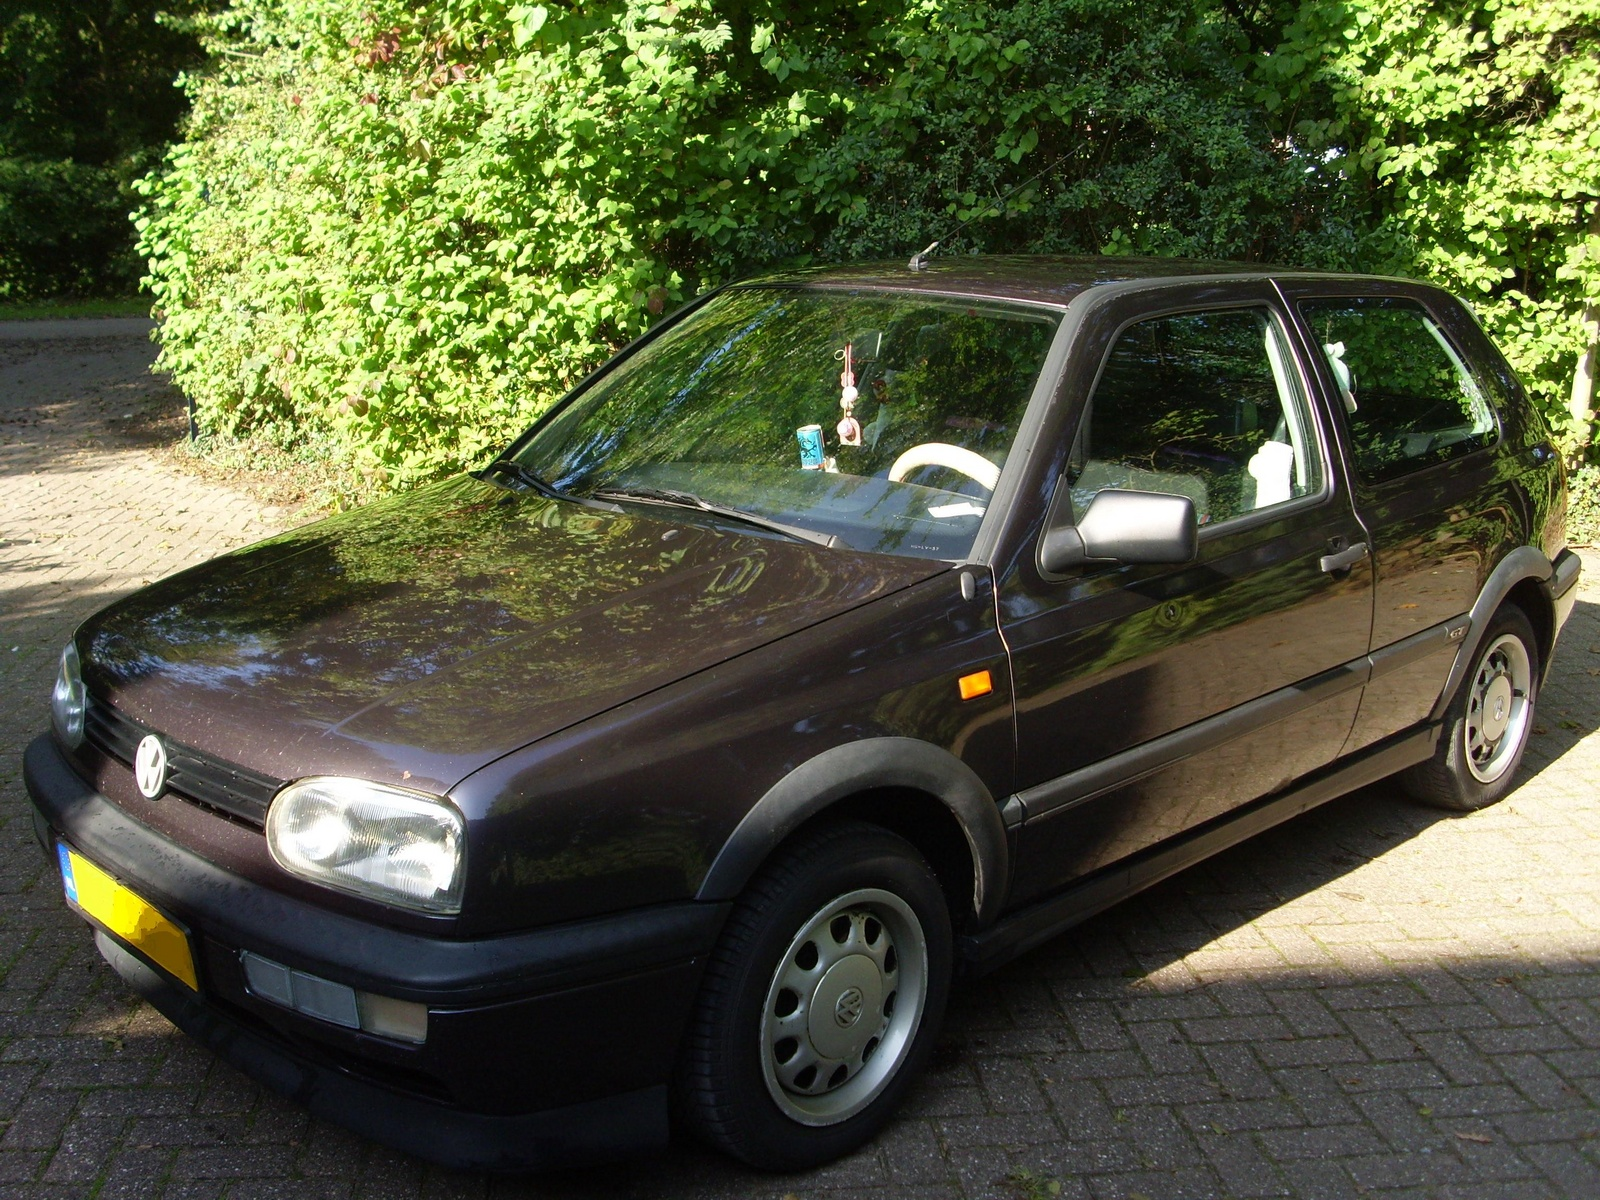 1993 Volkswagen Golf picture